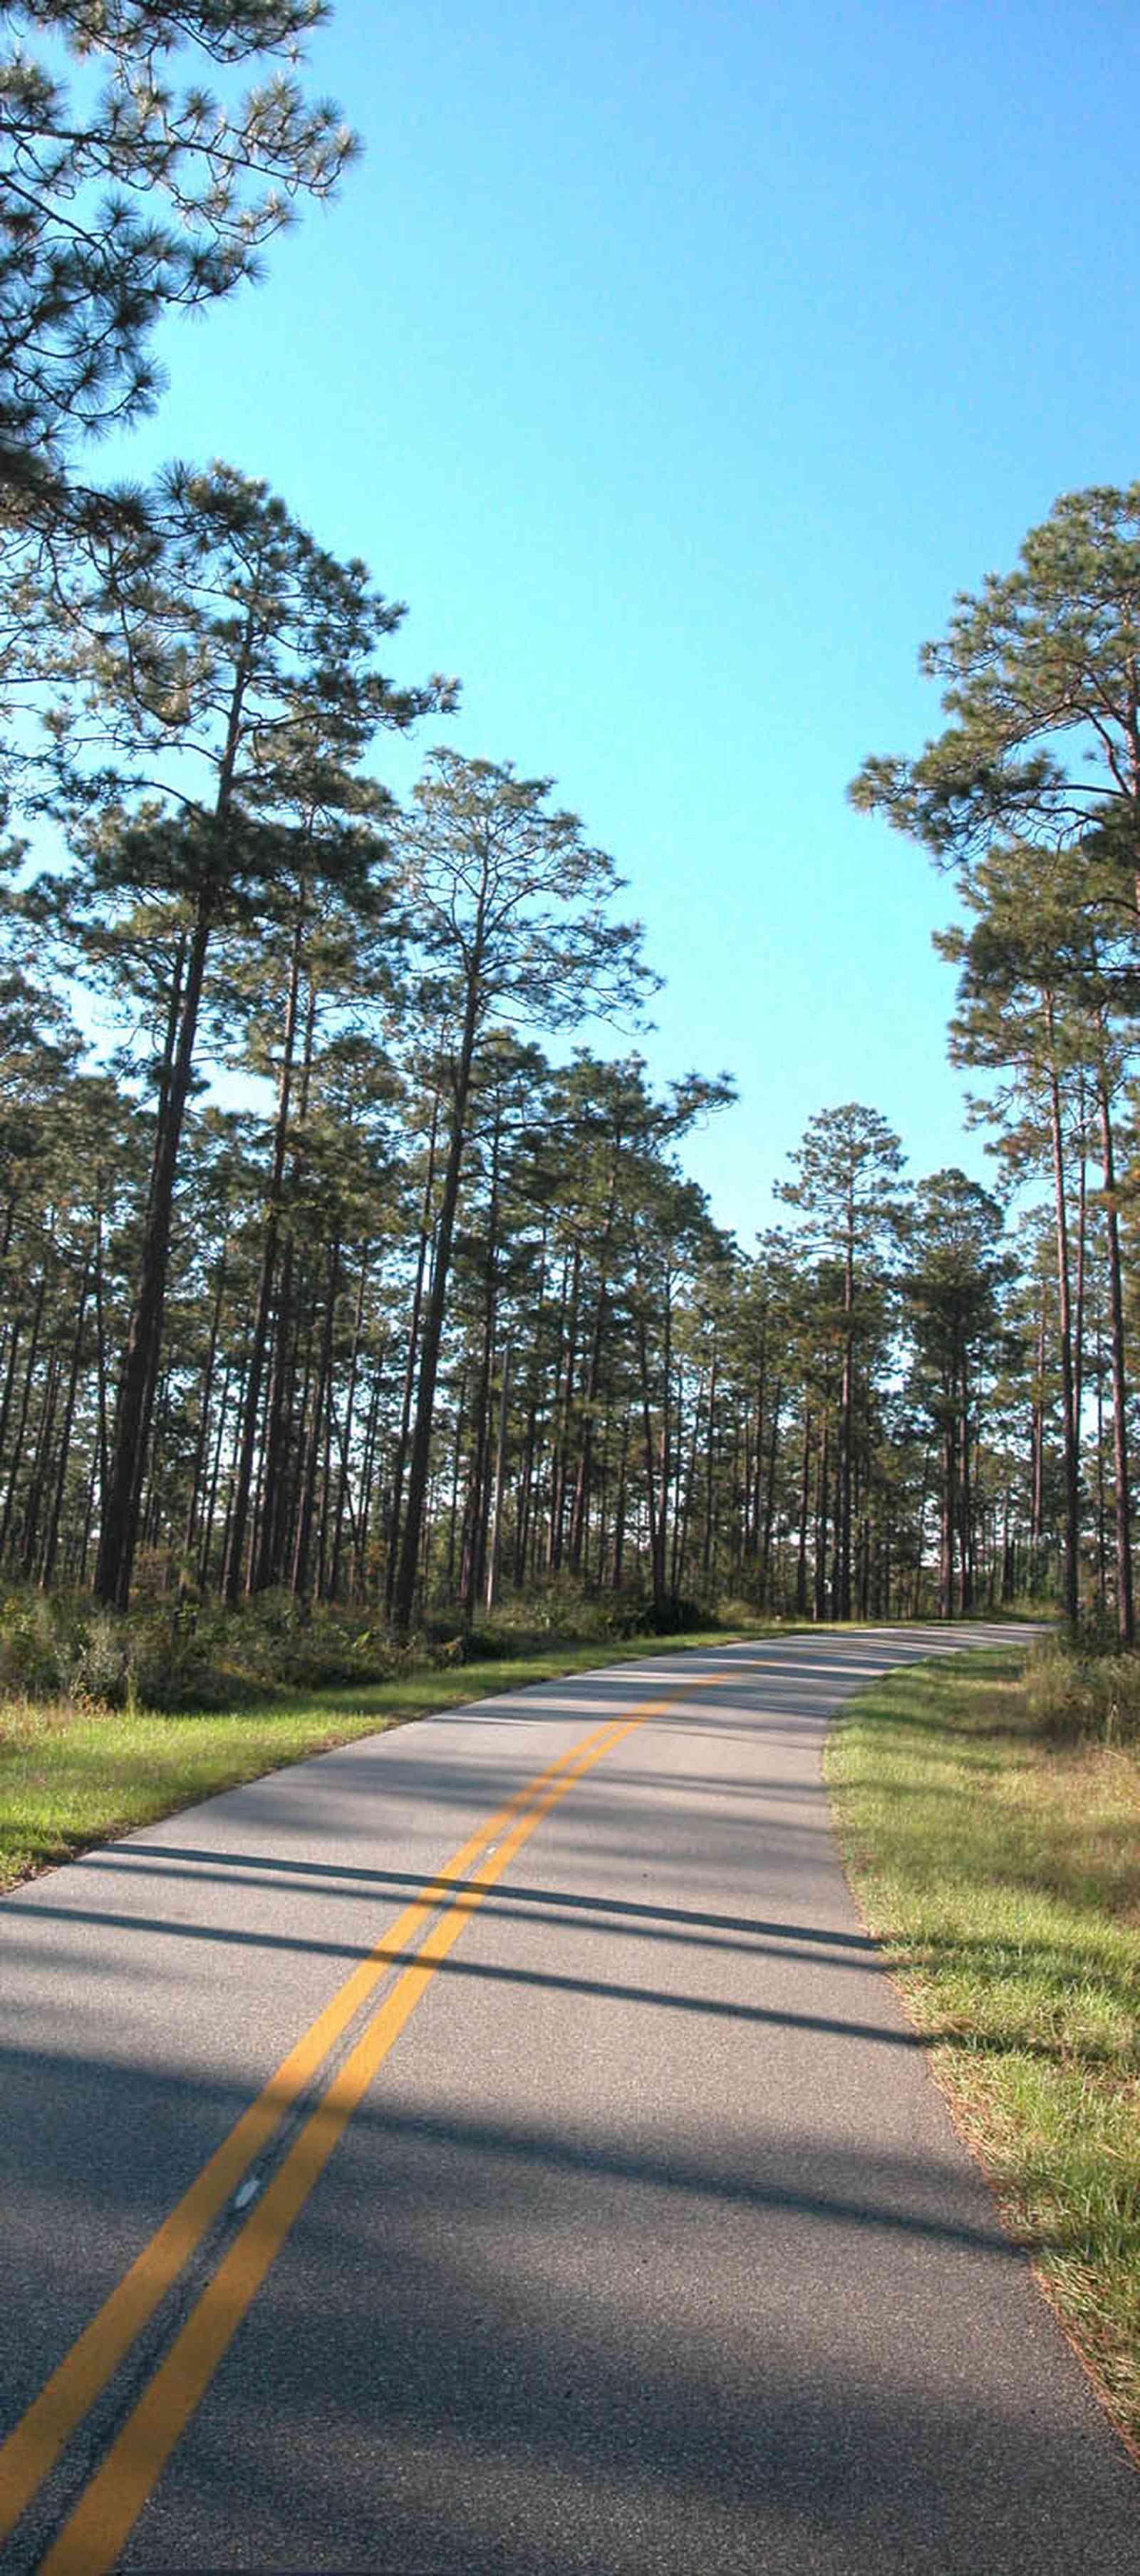 Blackwater-River-State-Park:-Pine-Forest_10.jpg:  forest, long-leaf pine tree, hearwood pine, two-lane road, country road, bracken fern